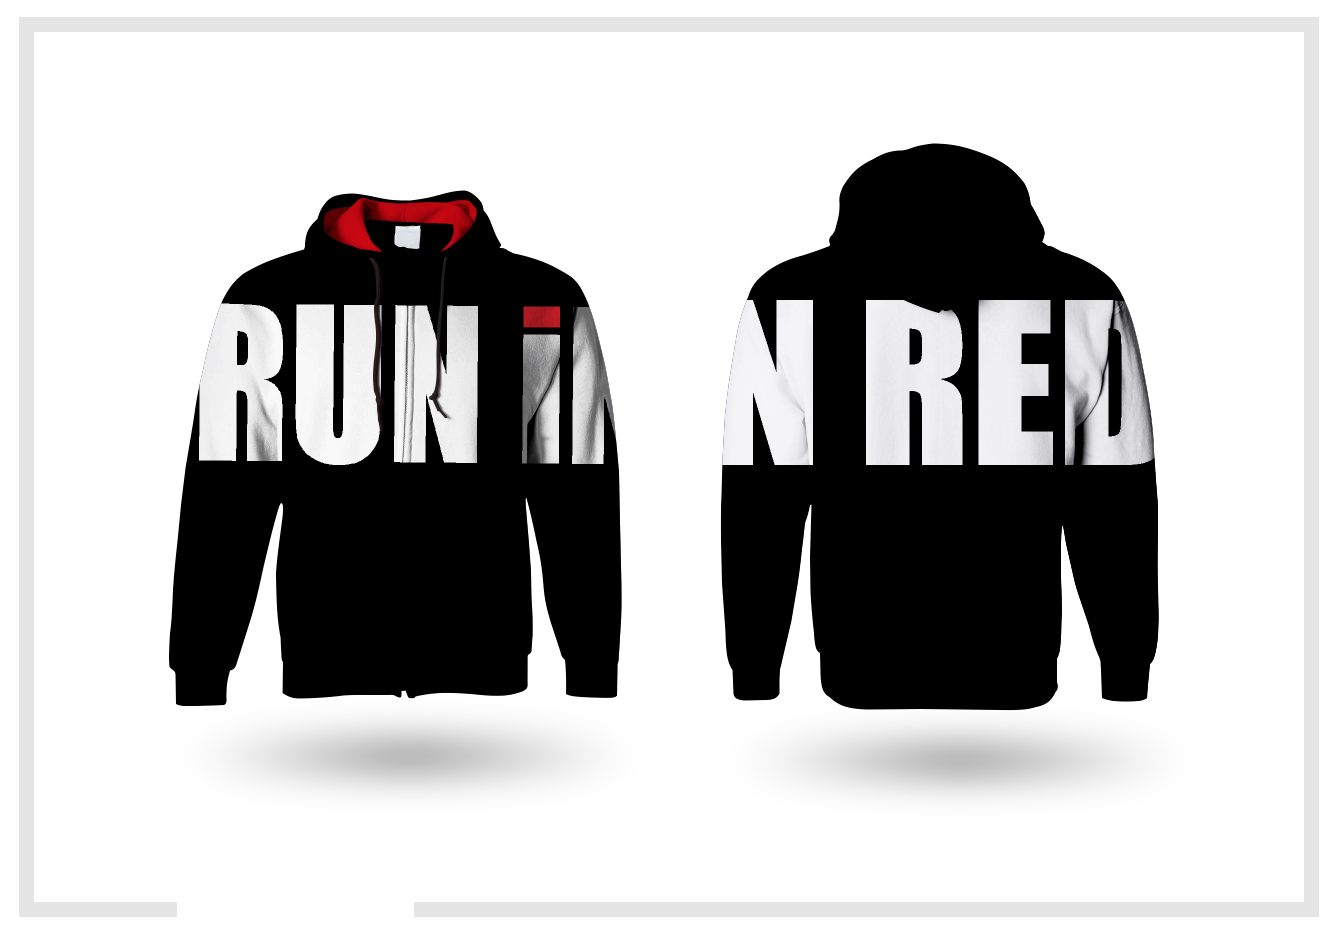 RUN iN RED Branded hoodies